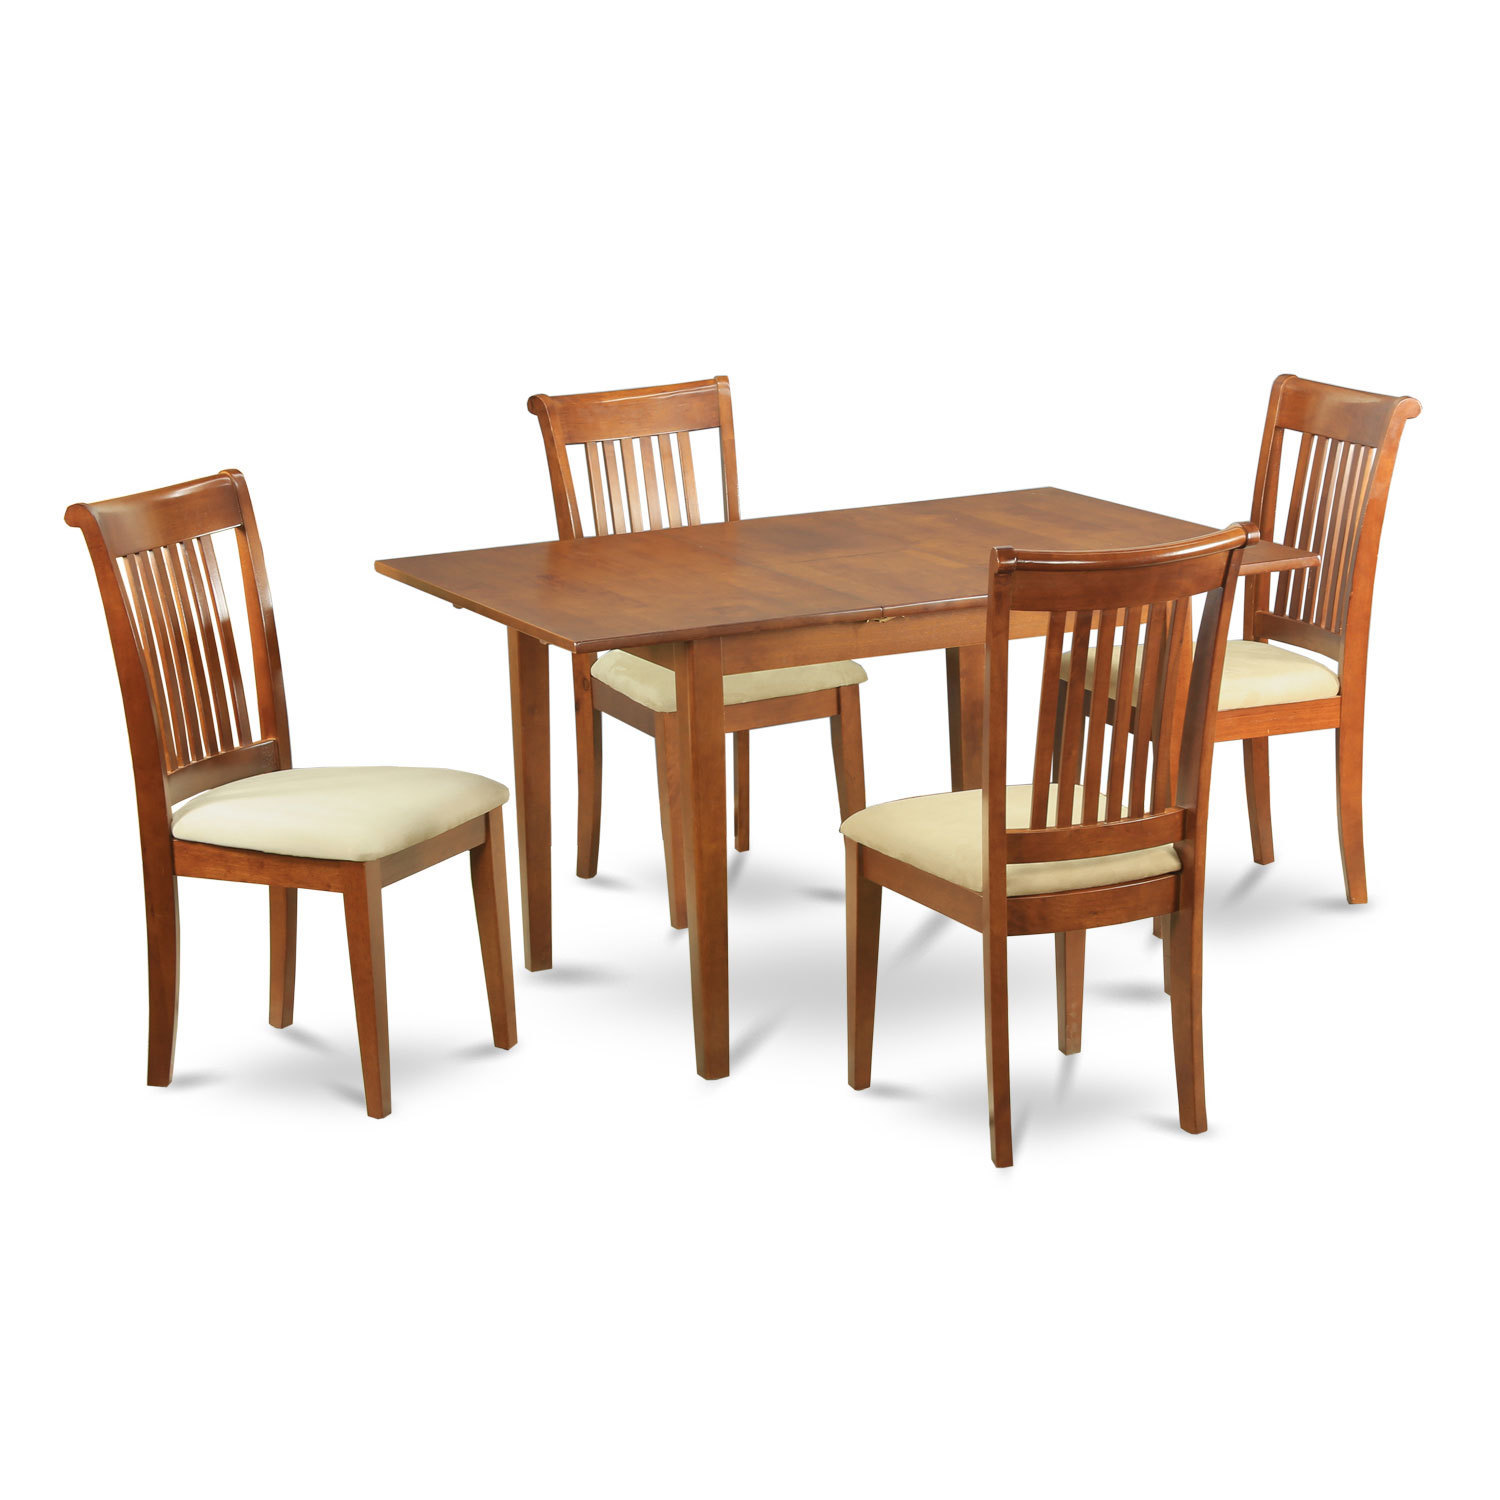 Small dinette set design homesfeed for Dinette sets with bench seating